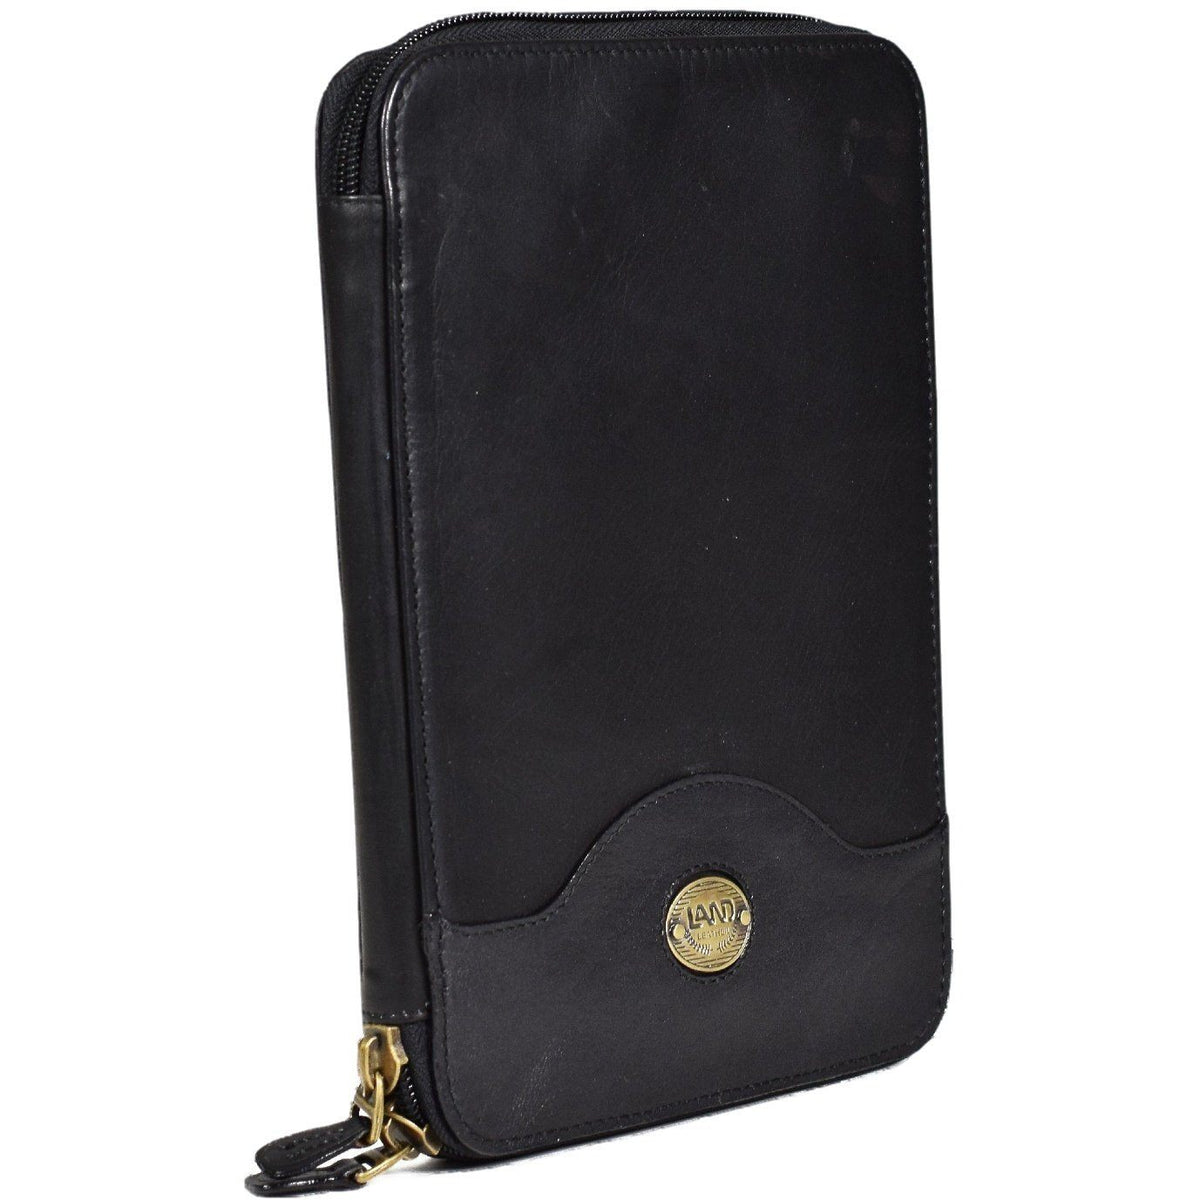 Santa Fe Tablet Case, Letter Pad | LAND Leather